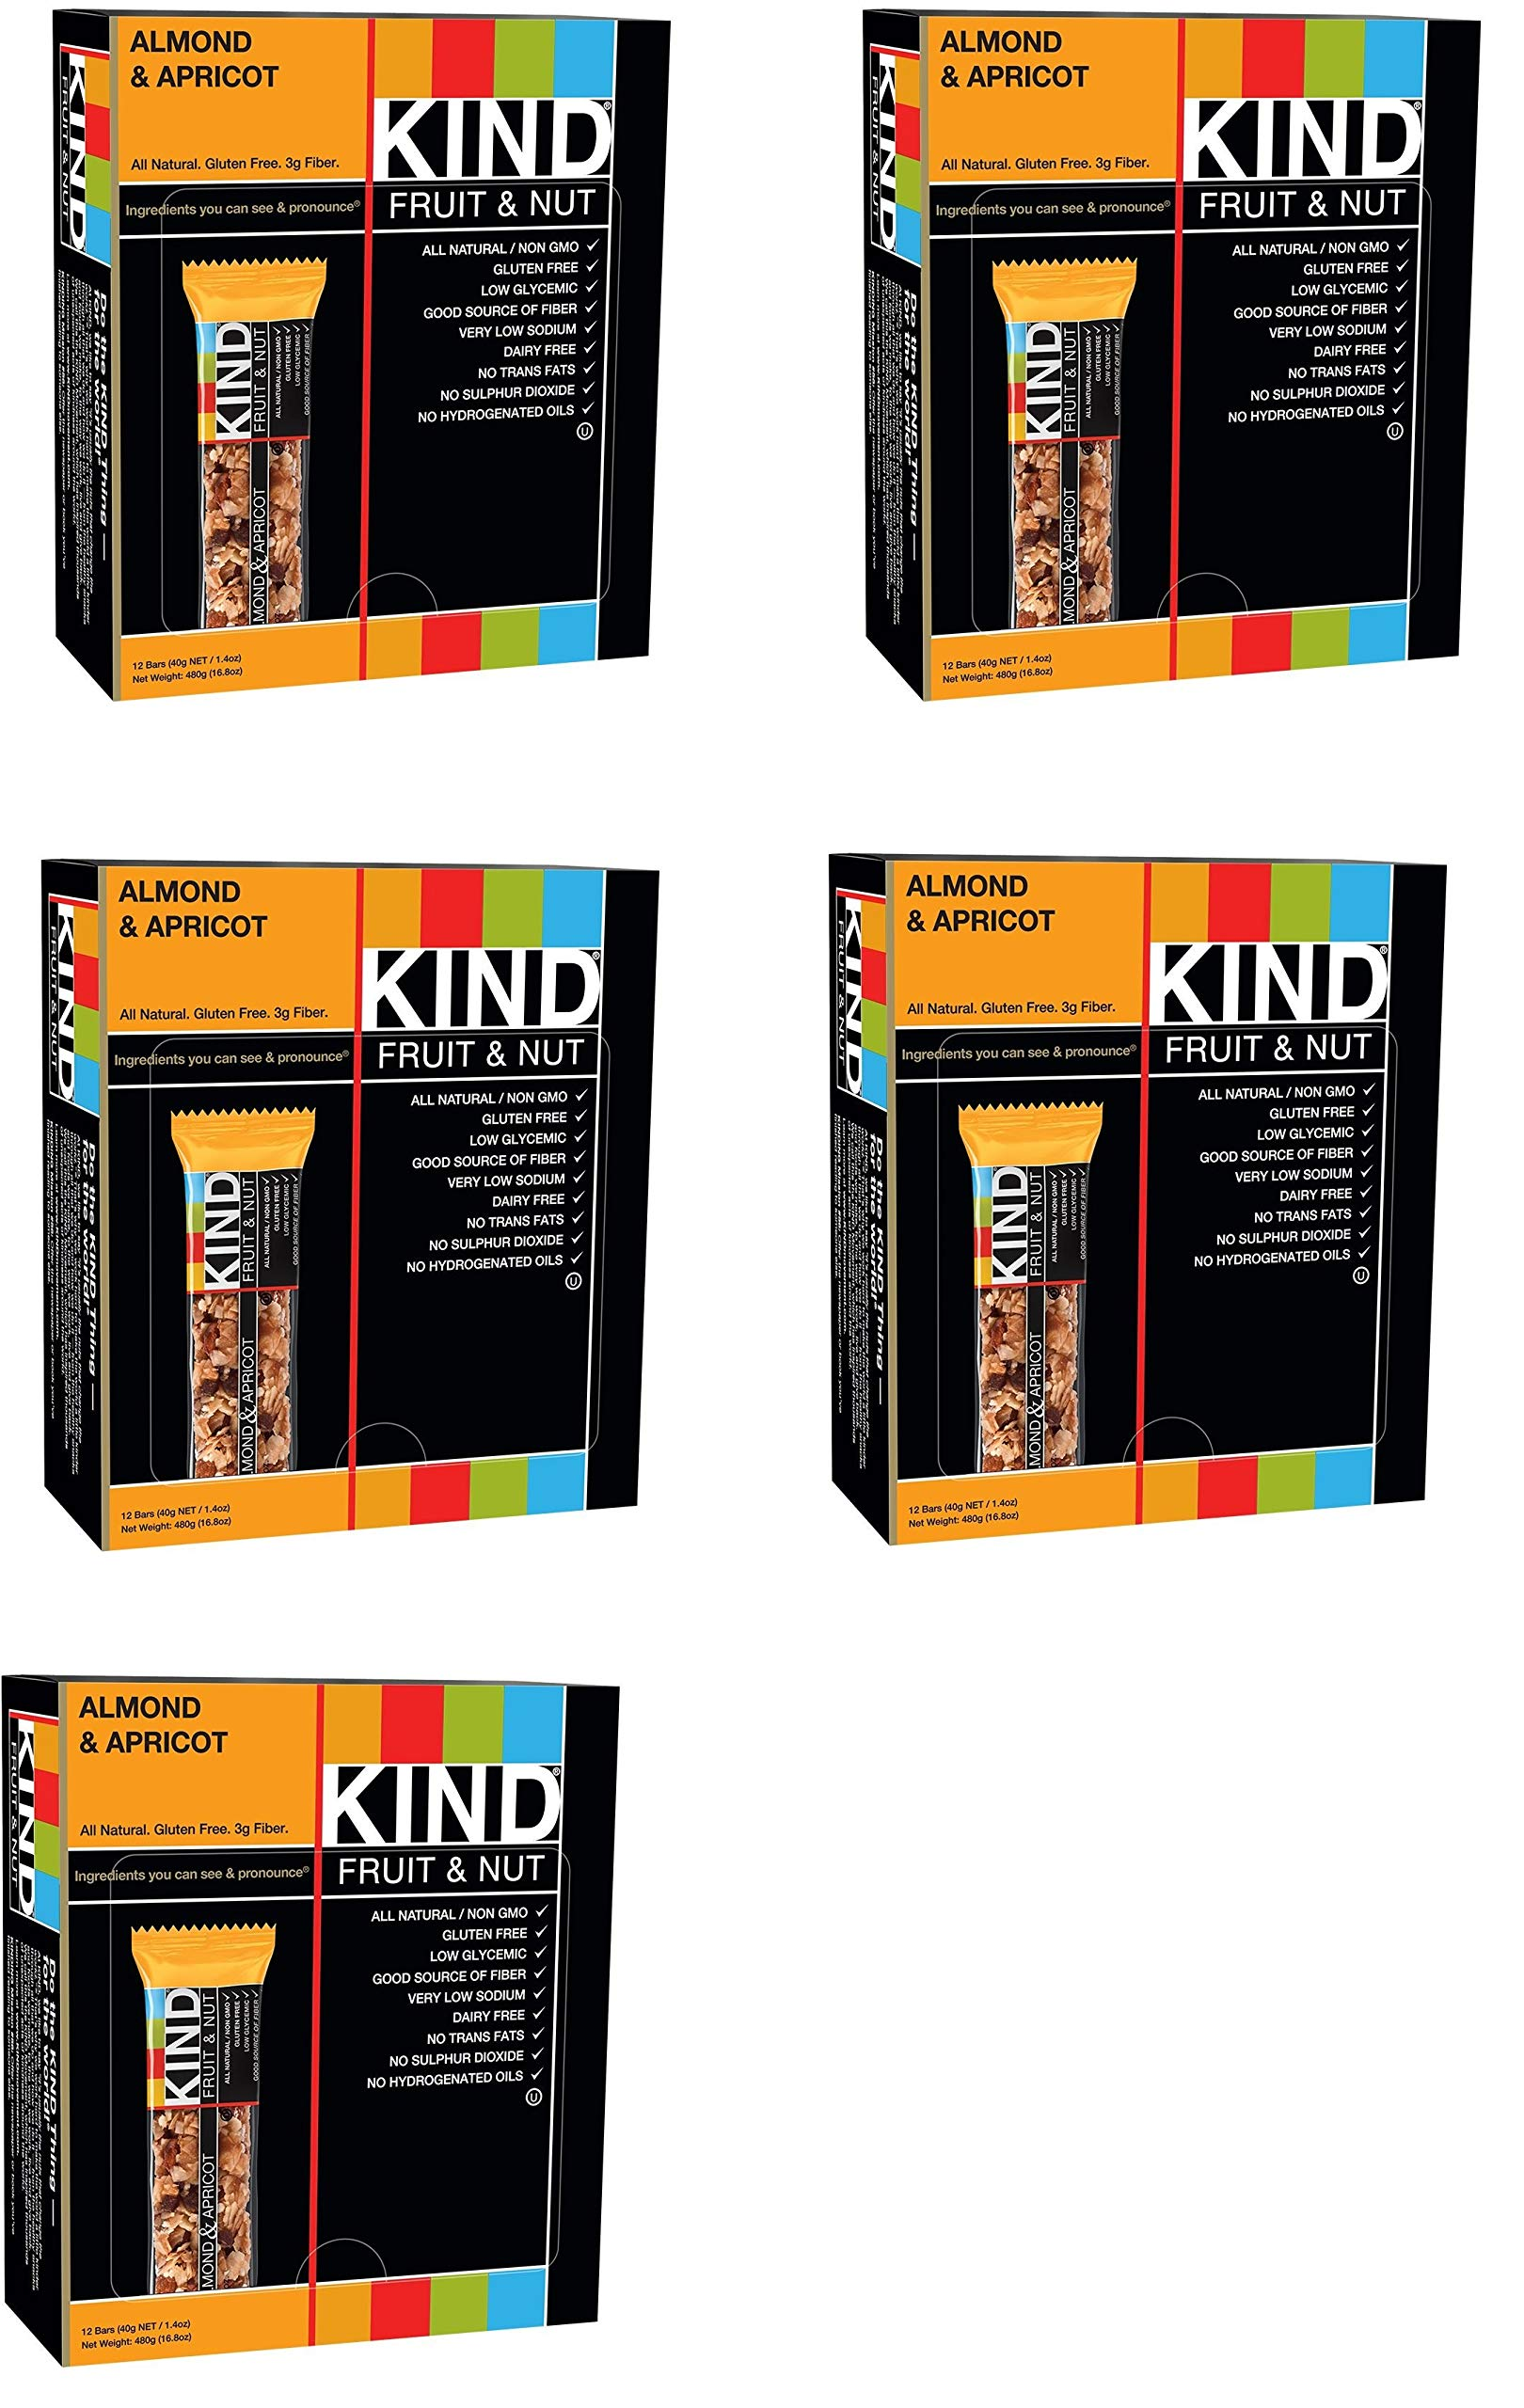 KIND Bars, Almond and Apricot, Gluten Free, 1.4oz, 60 Bars by KIND (Image #1)